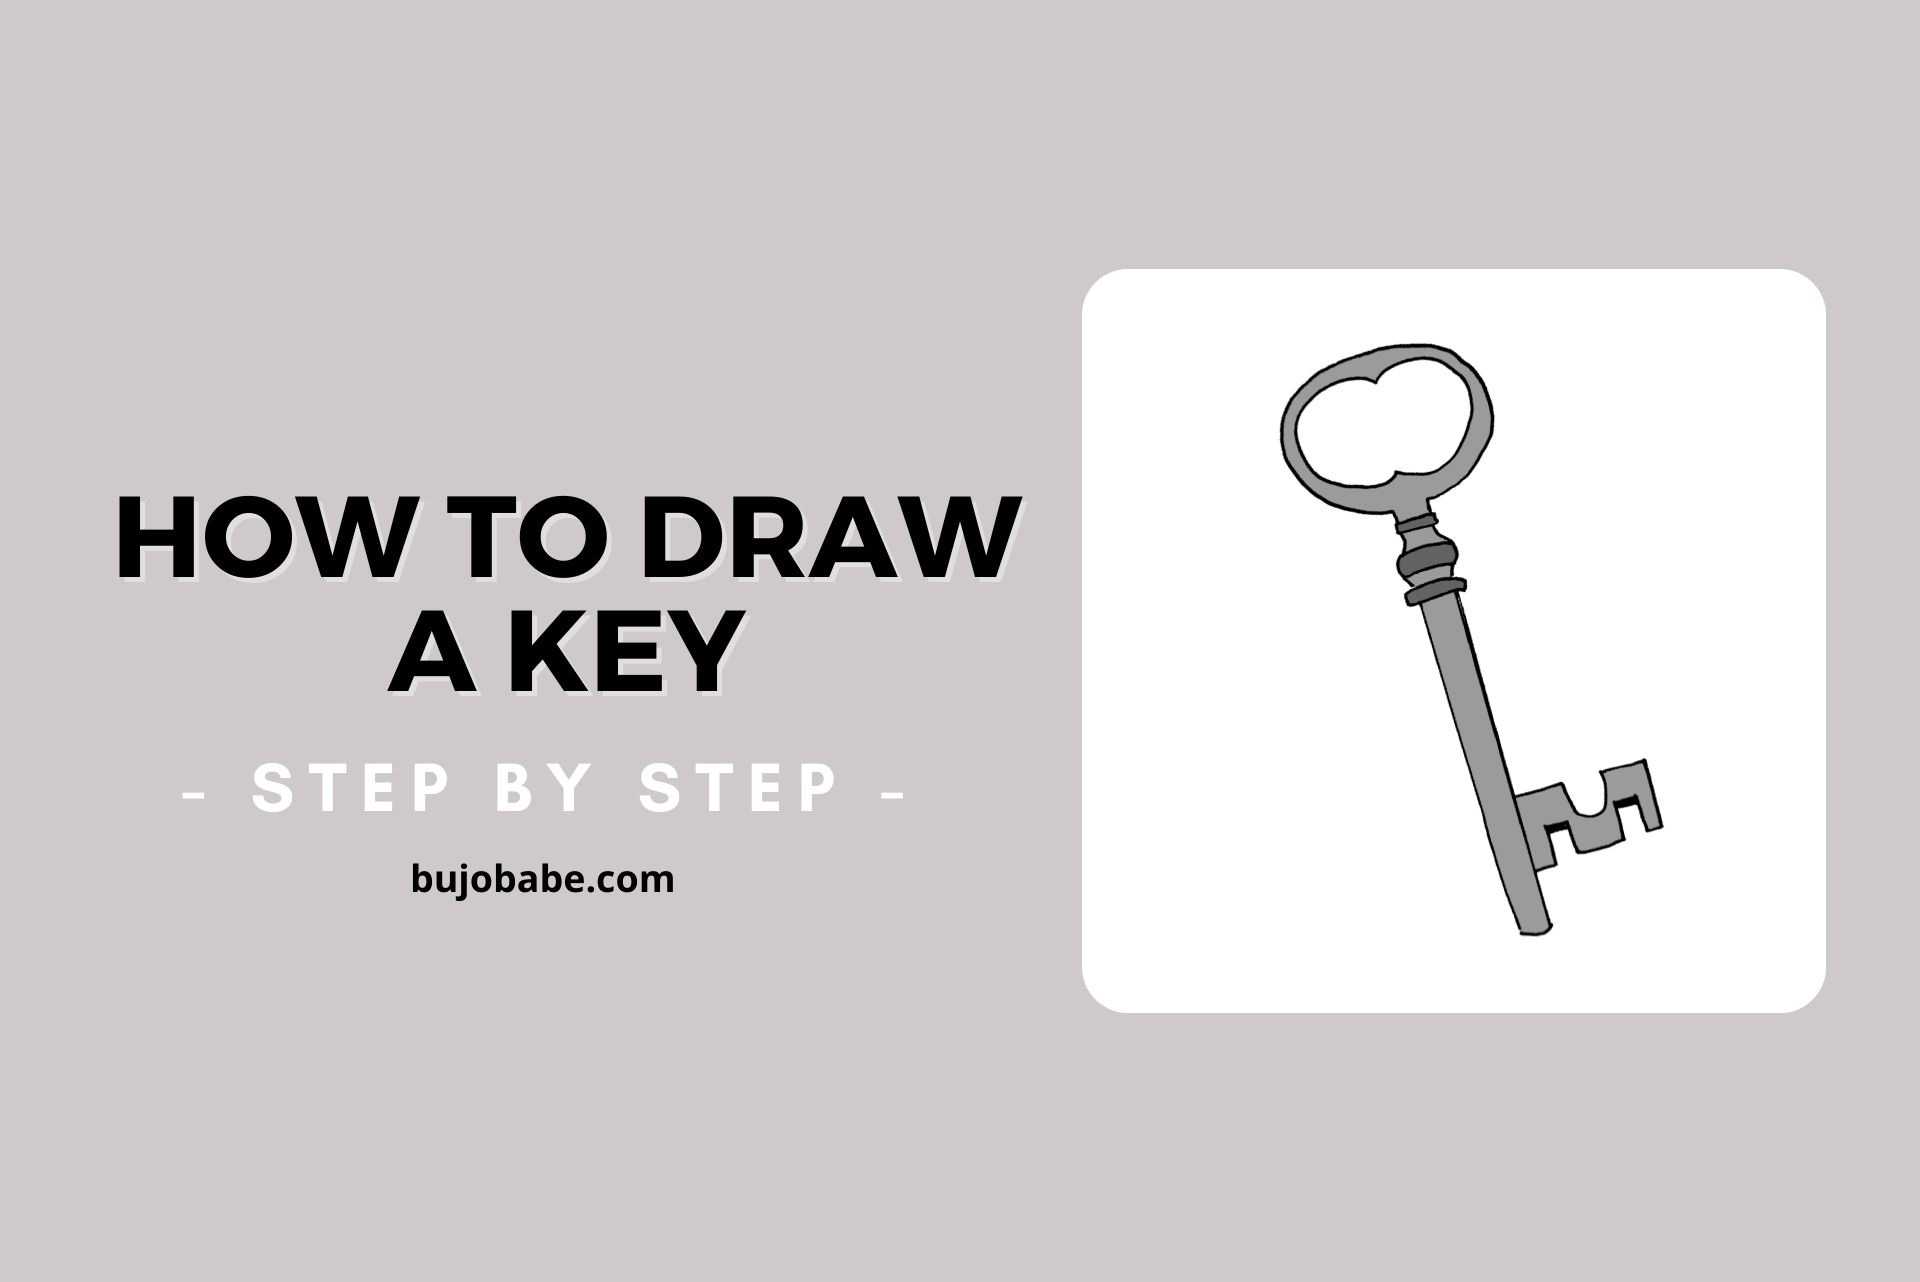 how to draw a key step by step